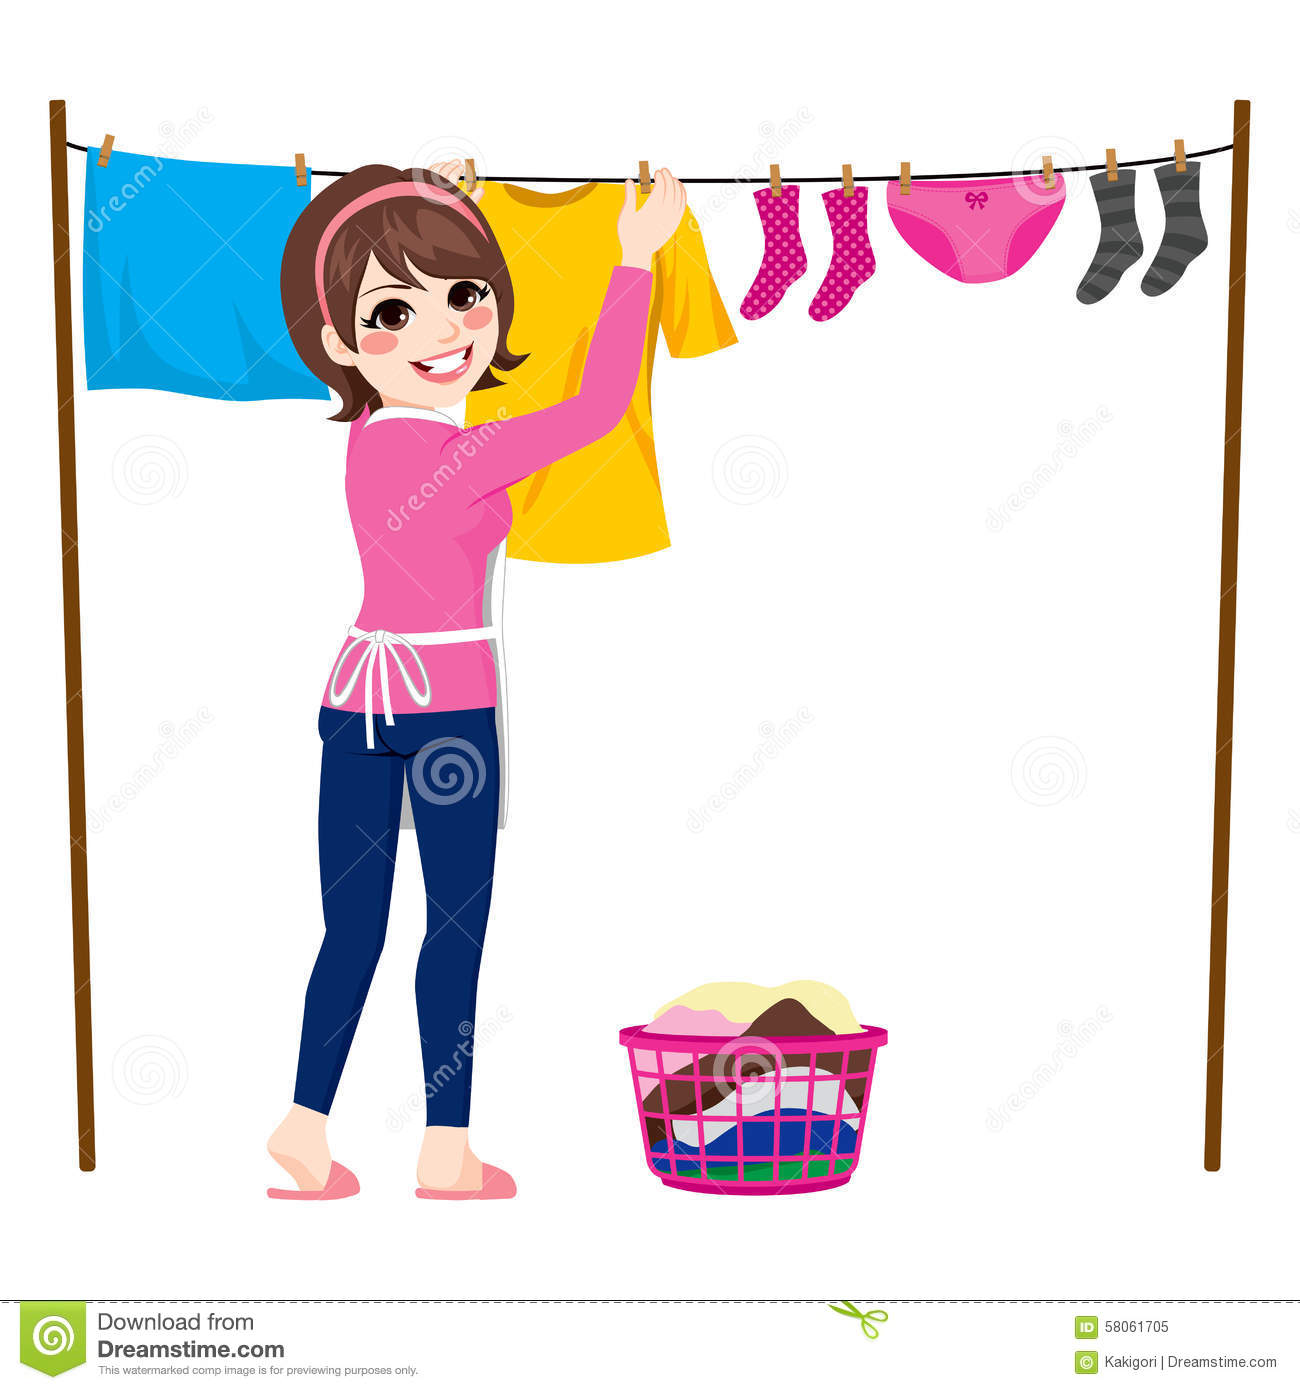 Hang Up Clothes Clipart.